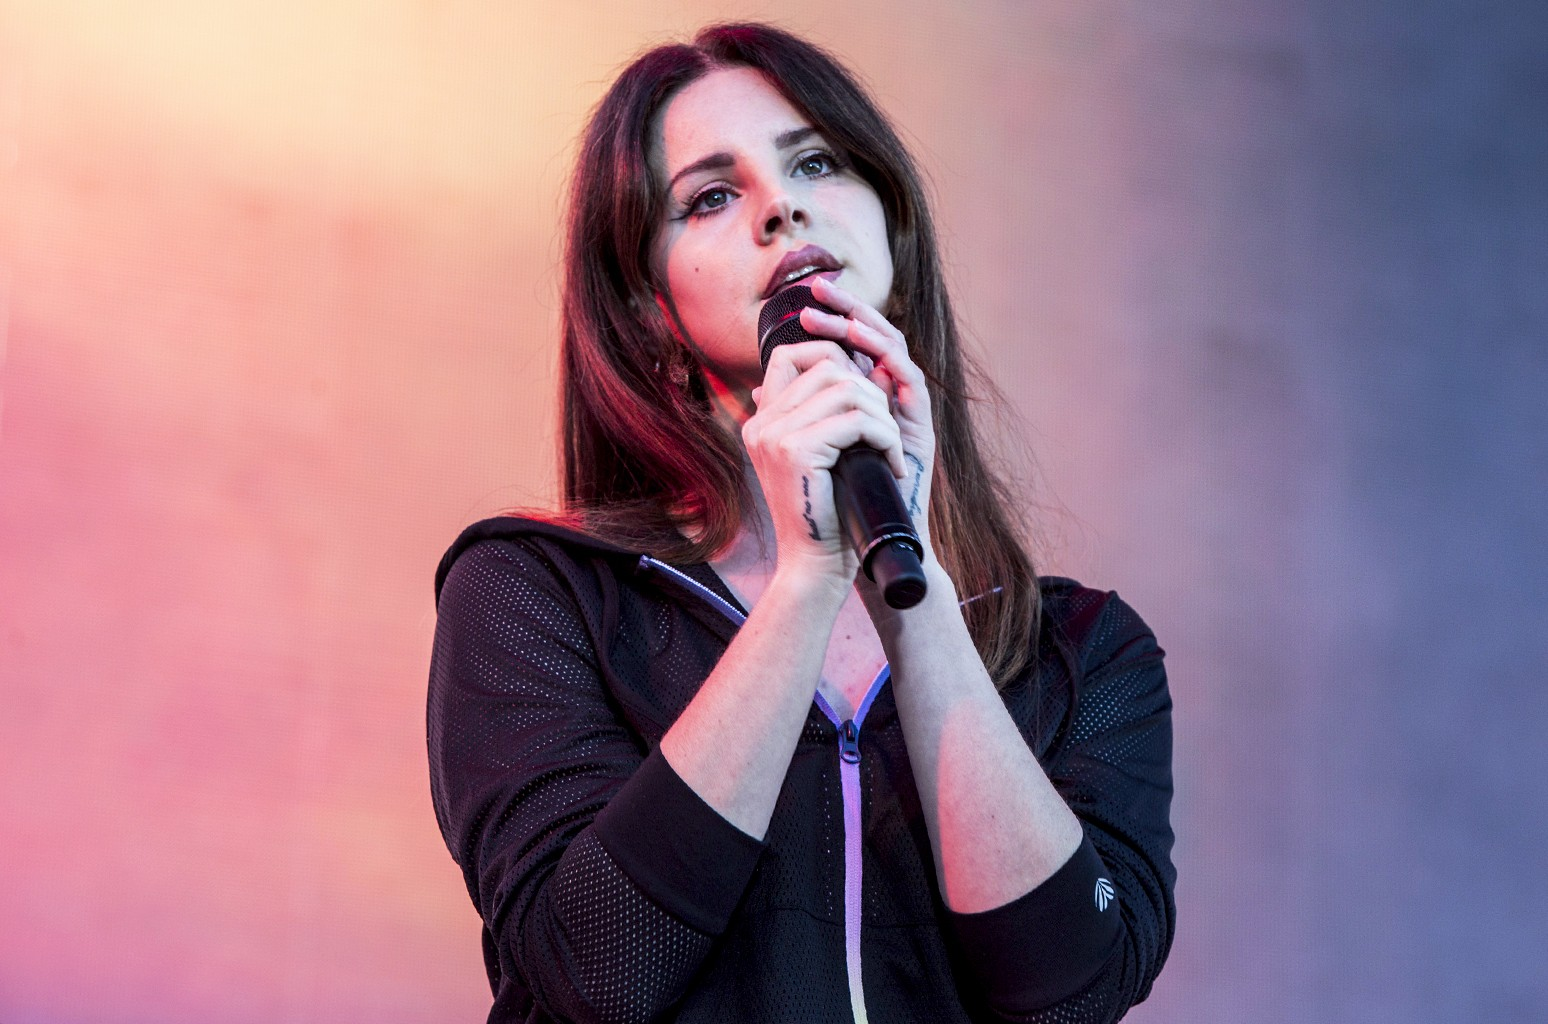 Lana Del Rey performs at the KROQ Weenie Roast 2017 at StubHub Center on May 20, 2017 in Carson, Calif.